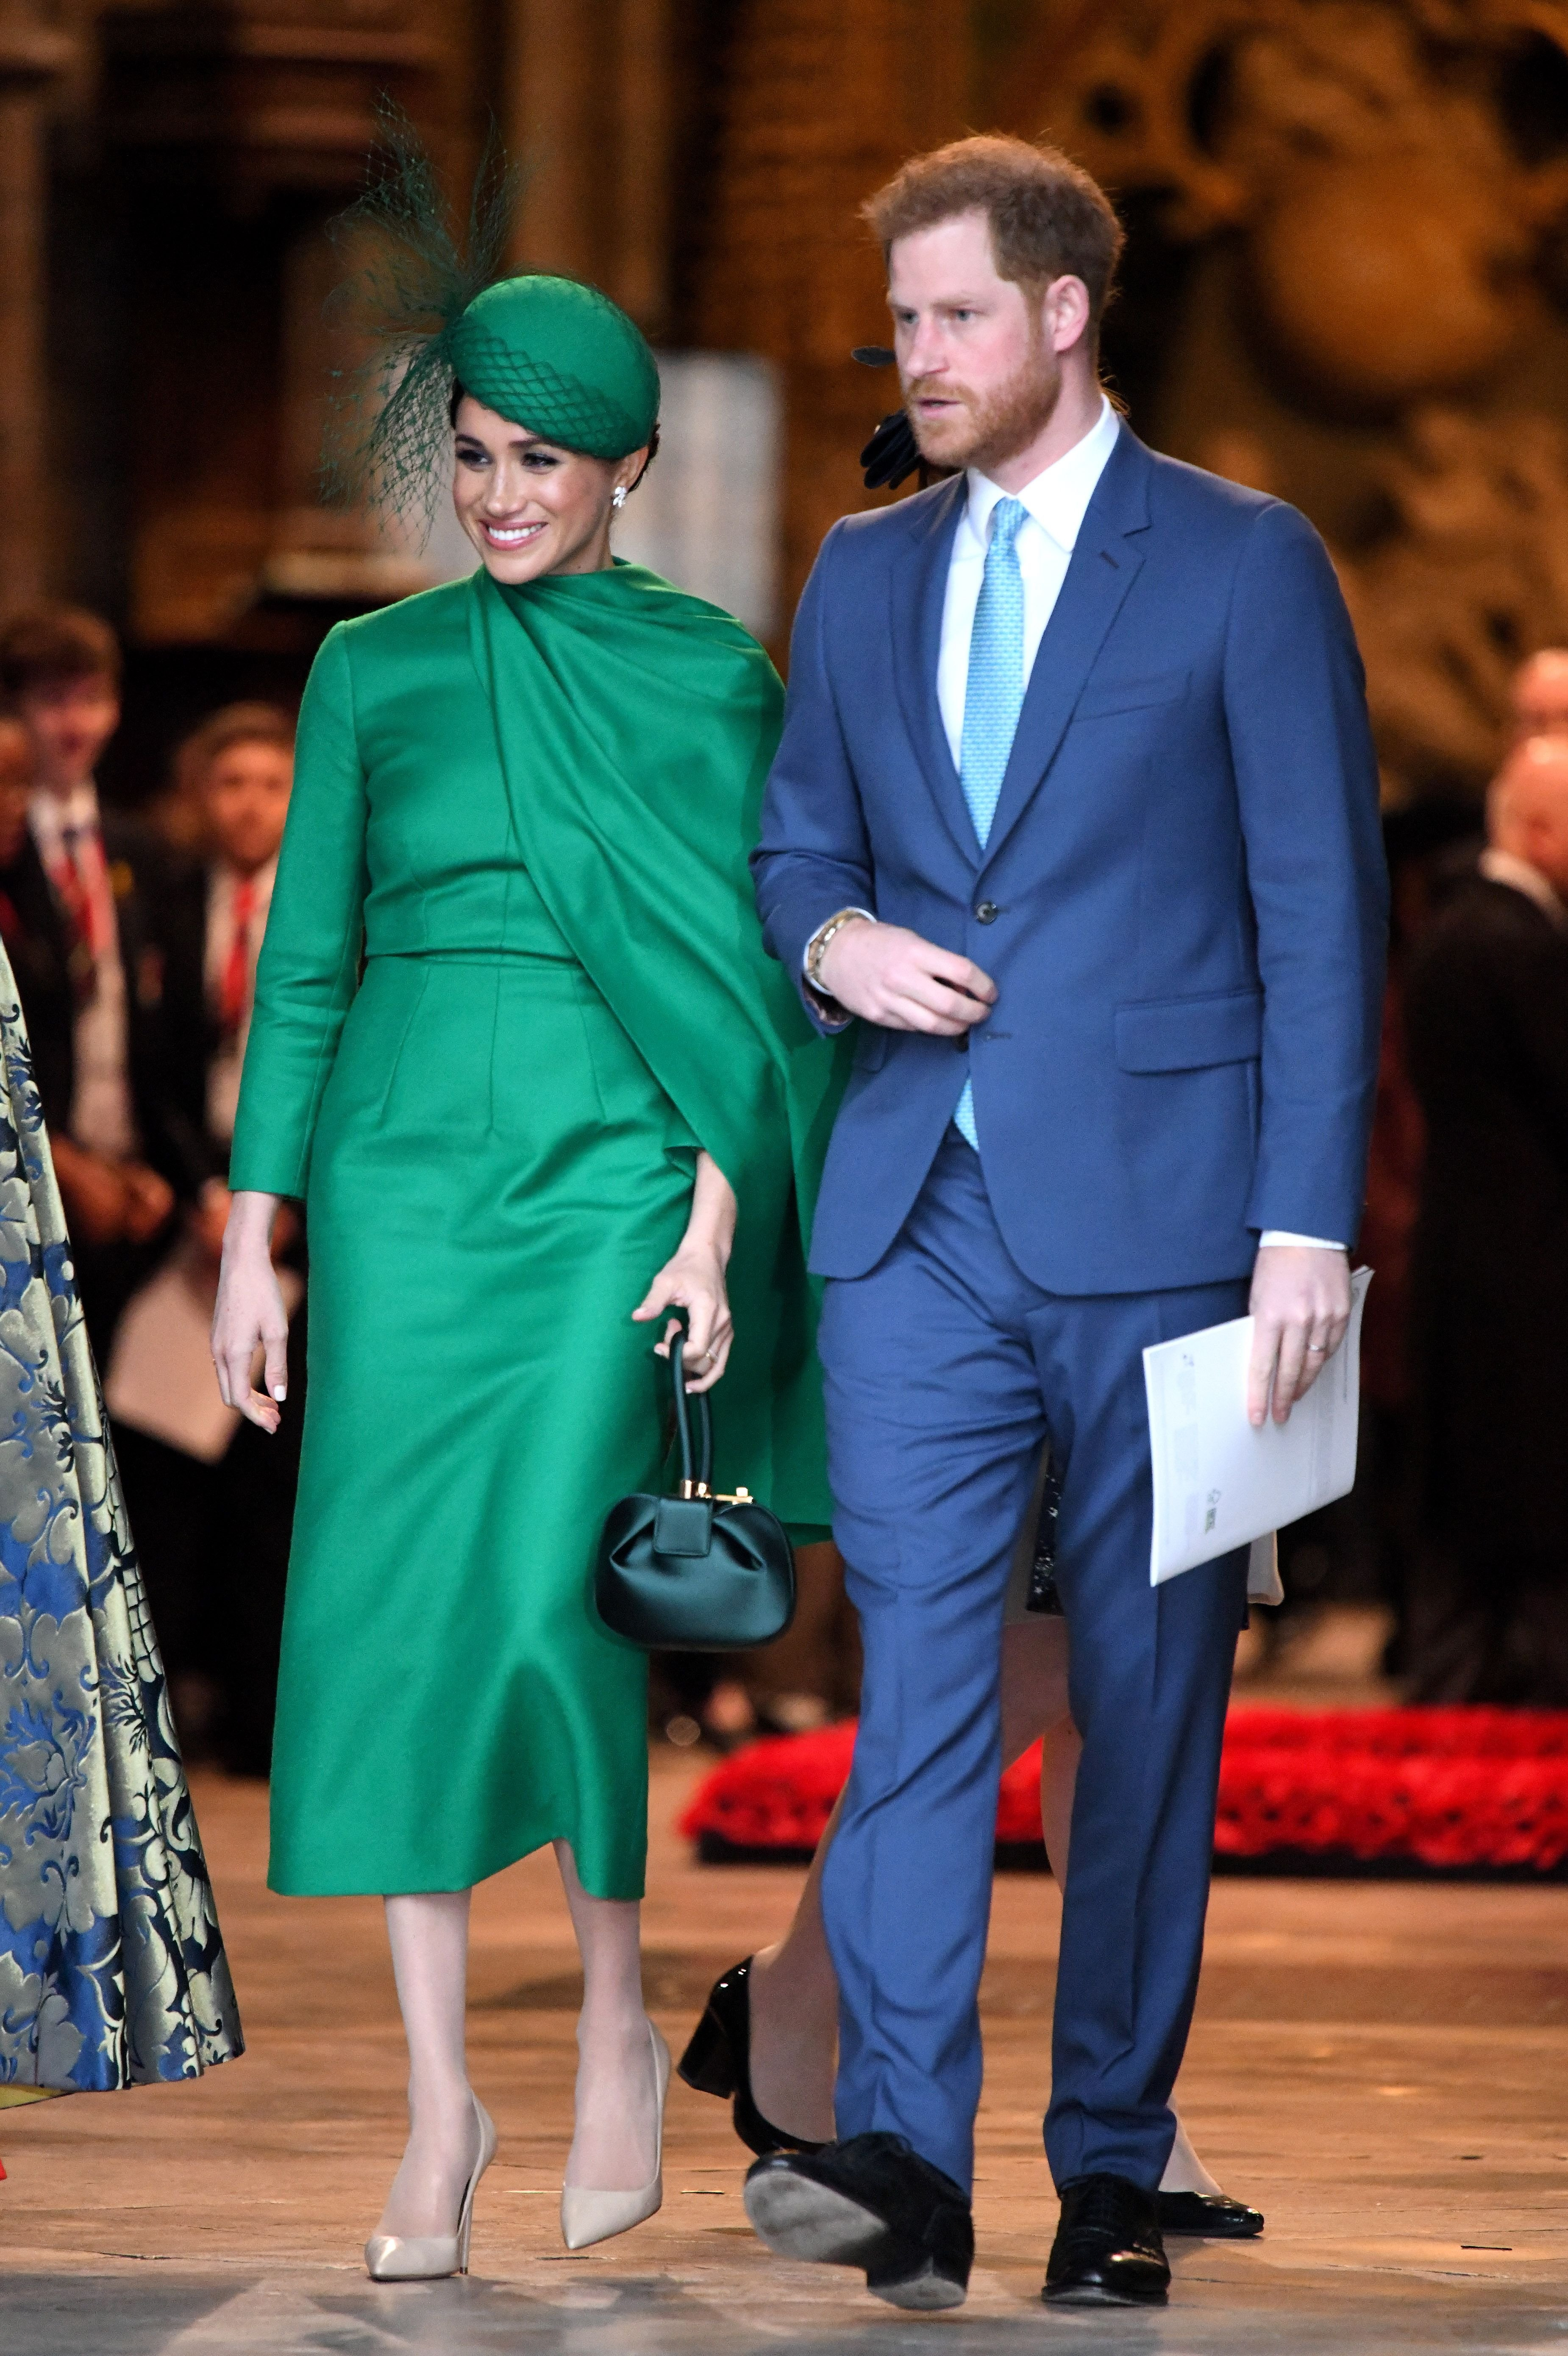 Prince Harry, Duke of Sussex and Meghan, Duchess of Sussex depart after attending the Commonwealth Day Service 2020 at Westminster Abbey on March 09, 2020   Getty Images